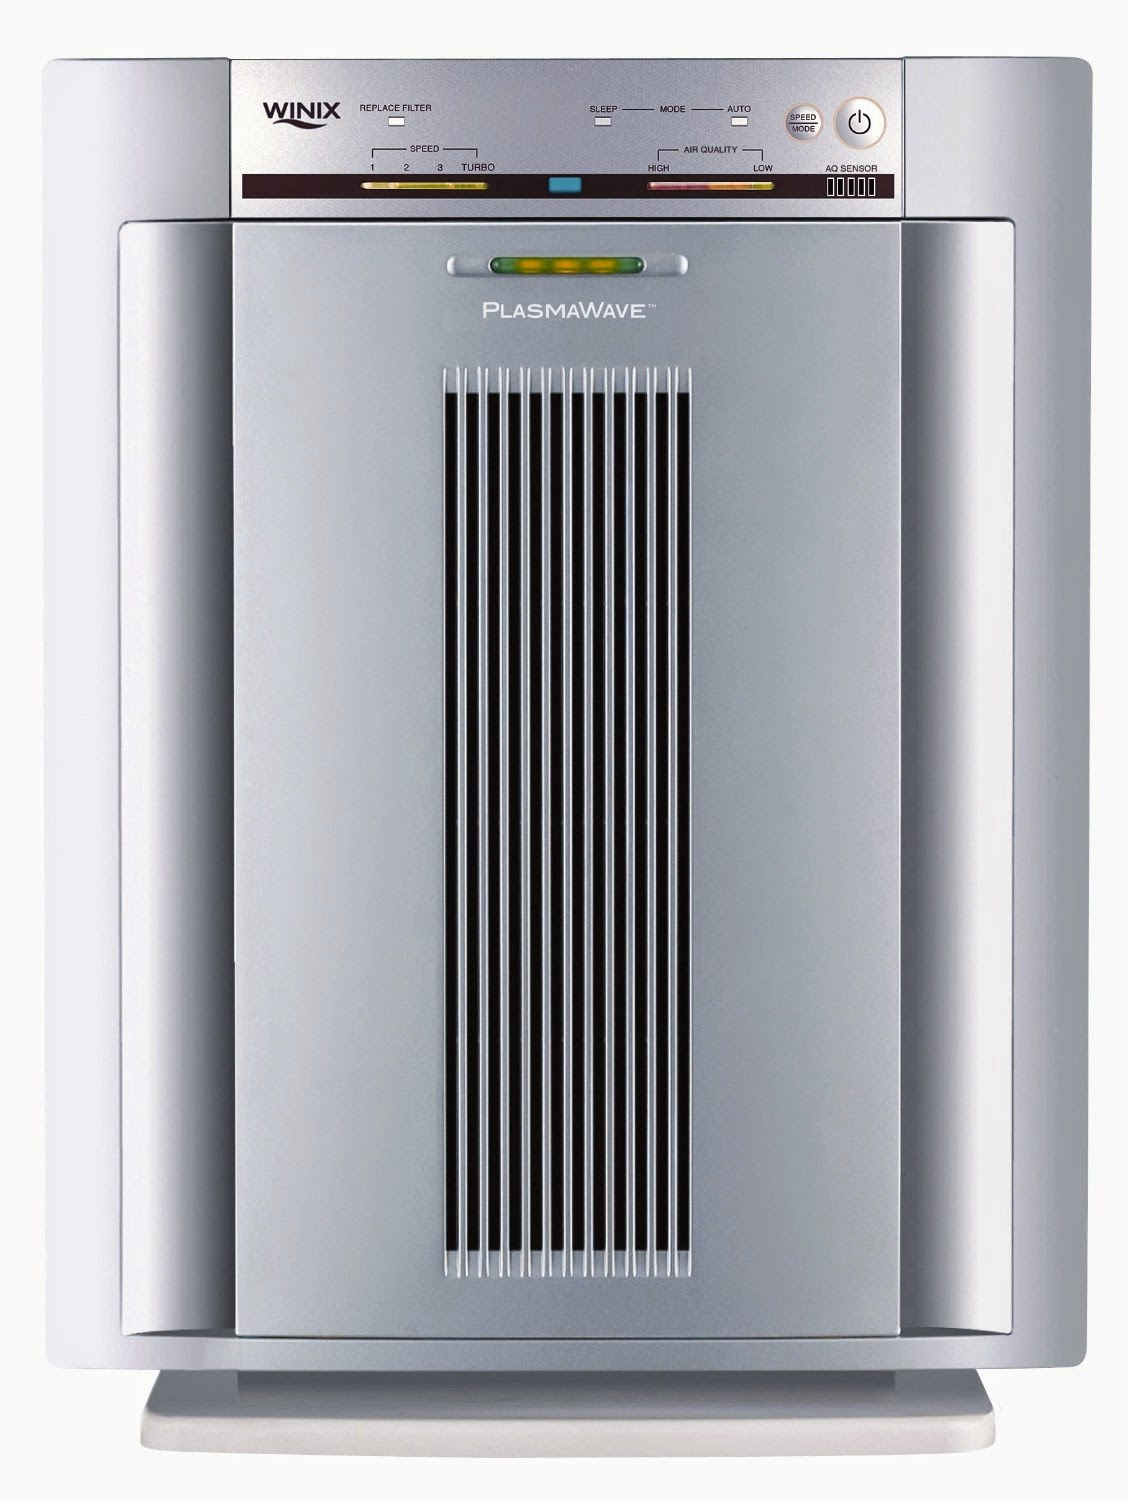 Winix WAC5300 PlasmaWave True HEPA Air Cleaner, 3-stage air cleaning system to capture airborne allergens pollutants and odors, compare with Winix WAC5500